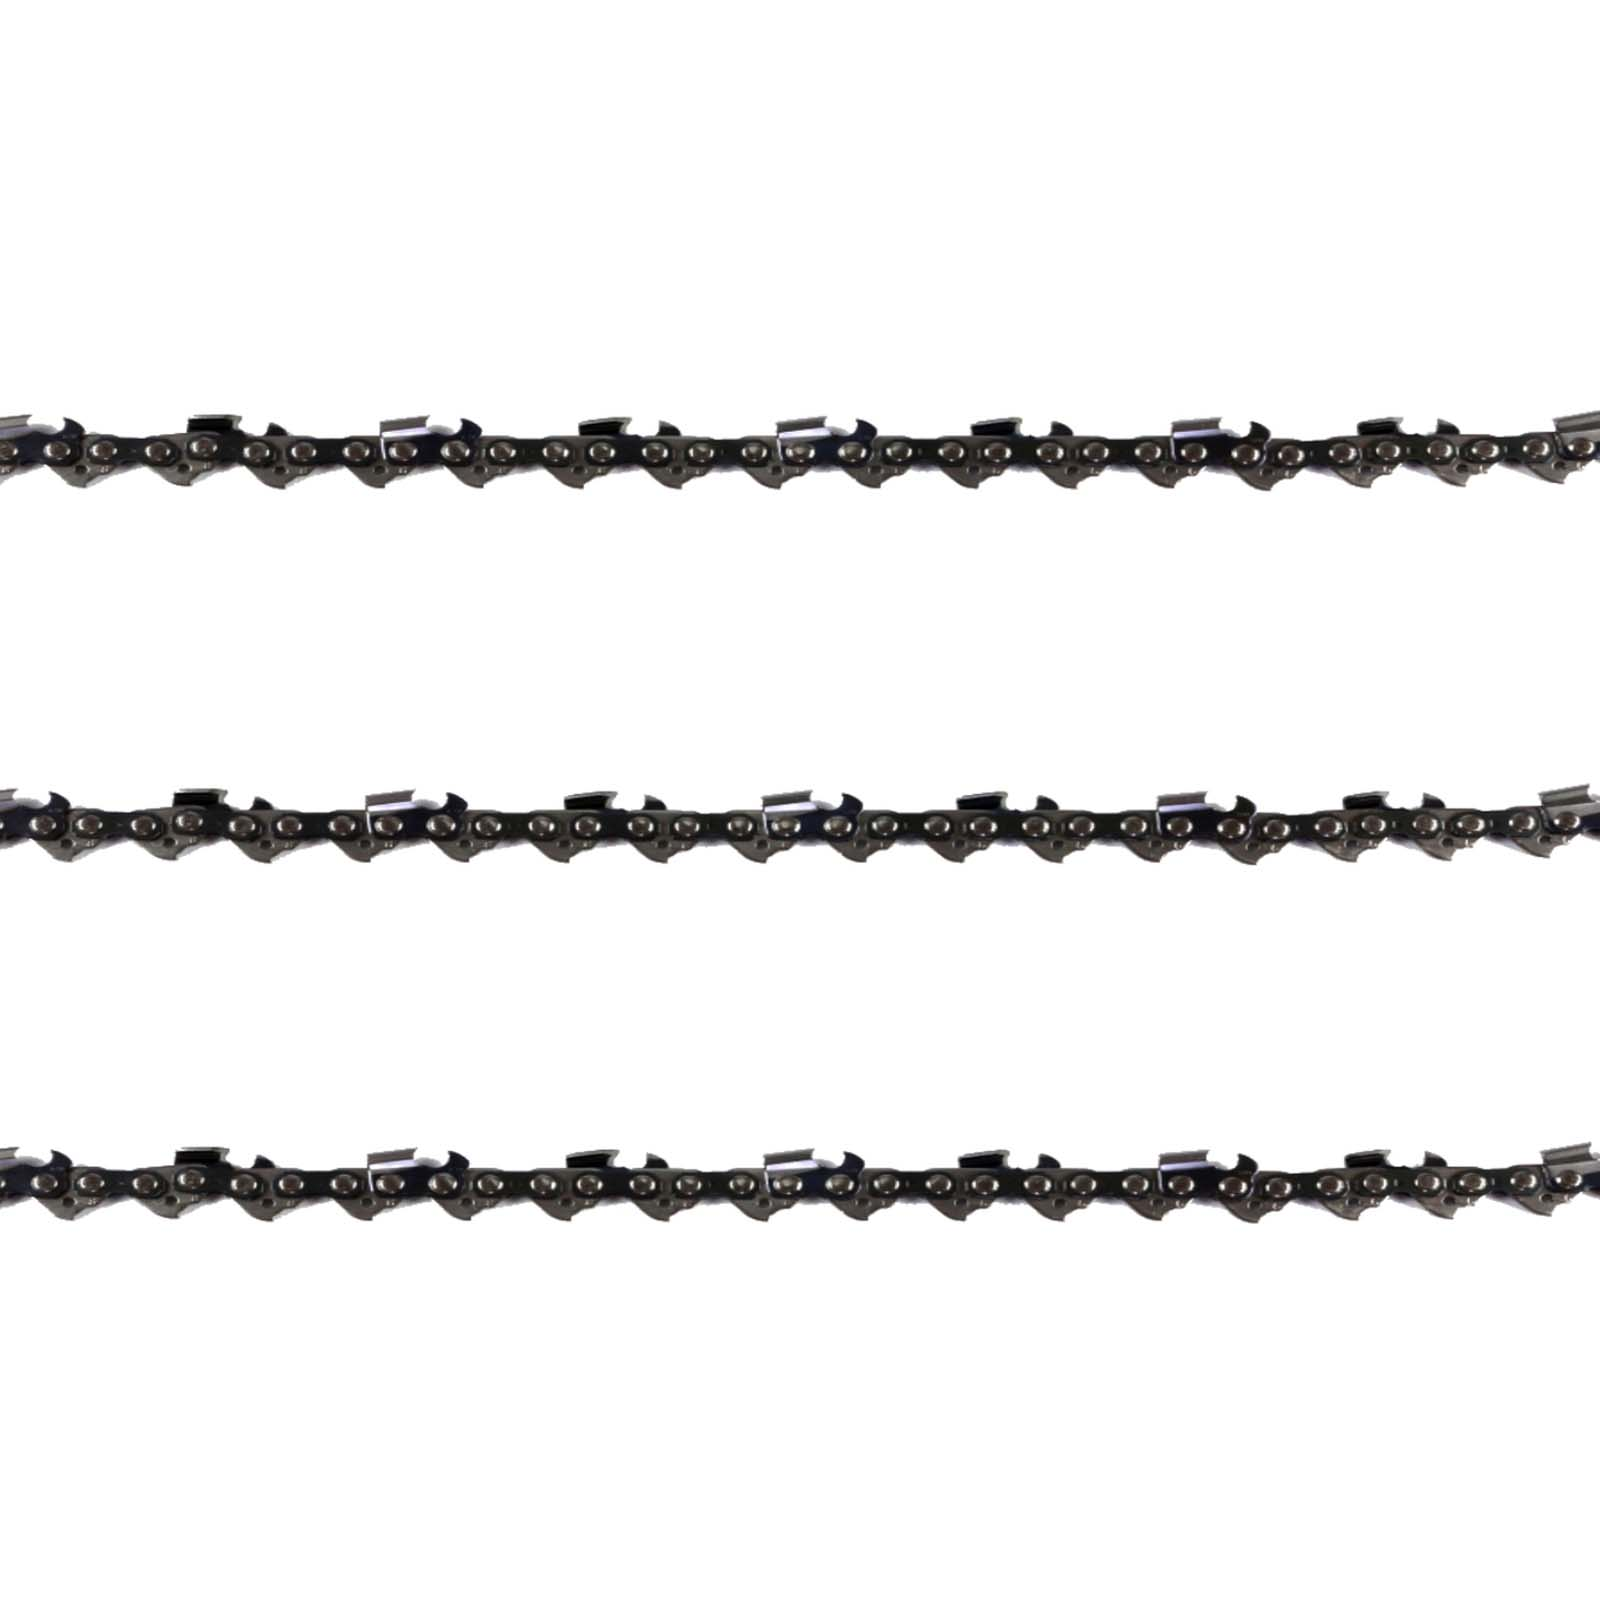 3x Chainsaw Chains Full Chisel 3/8 058 72DL for Husqvarna